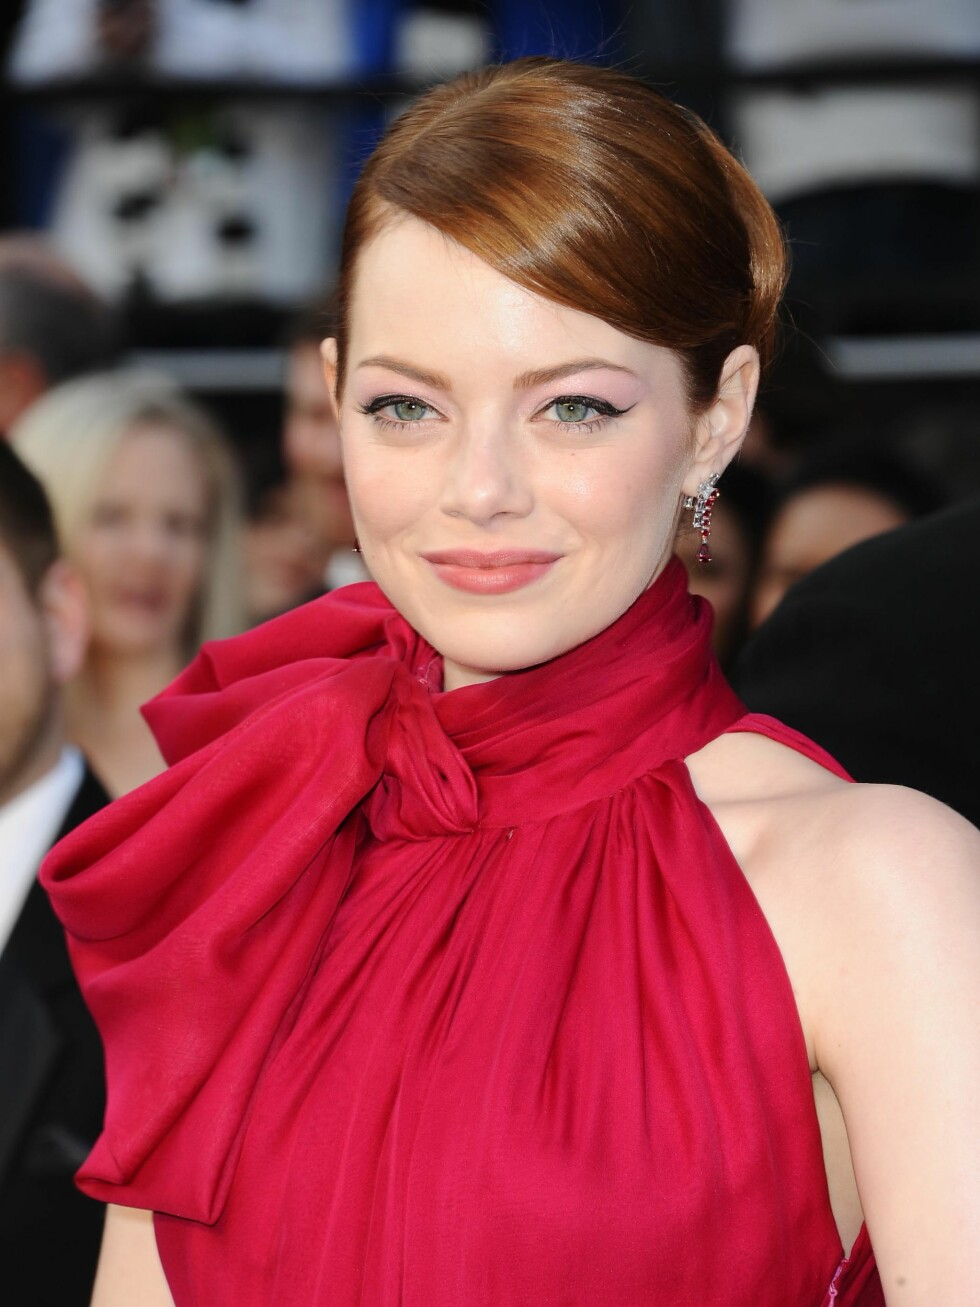 Los Angeles, CA - 02/26/2012 - The 84th Academy Awards - Arrivals, held at the Hollywood & Highland Centre .  -PICTURED: Emma Stone -PHOTO by: Kyle Rover/startraksphoto.com -KRL151431.JPG  Startraks Photo New York, NY  For licensing please call 212-414-9464 or email sales@startraksphoto.com / ALL OVER PRESS / ALL OVER PRESS Foto: All Over Press